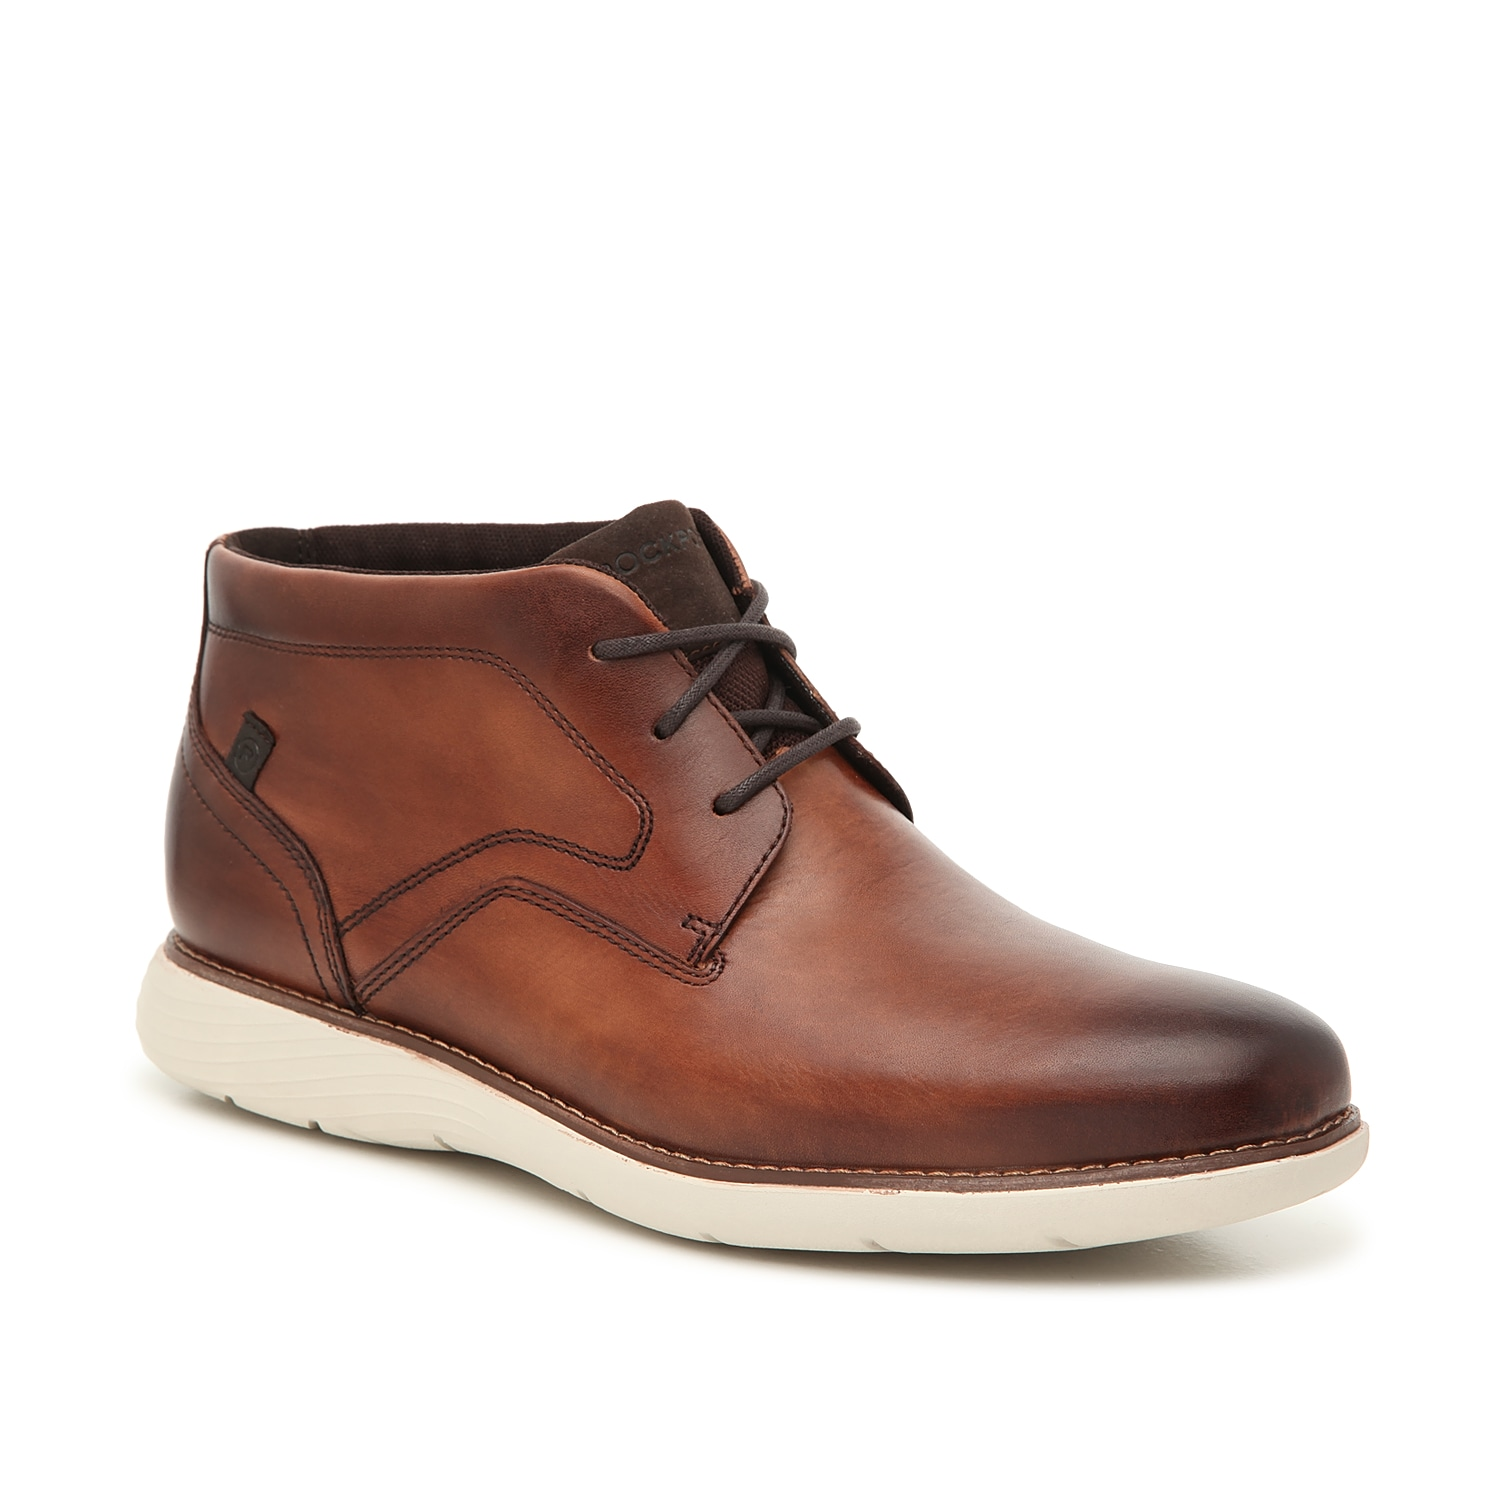 Bring versatility to any look in the Garett chukka boots from Rockport. These leather mid-tops feature truTECH® cushioning and a supportive midsole to keep you feeling on top from day to night.